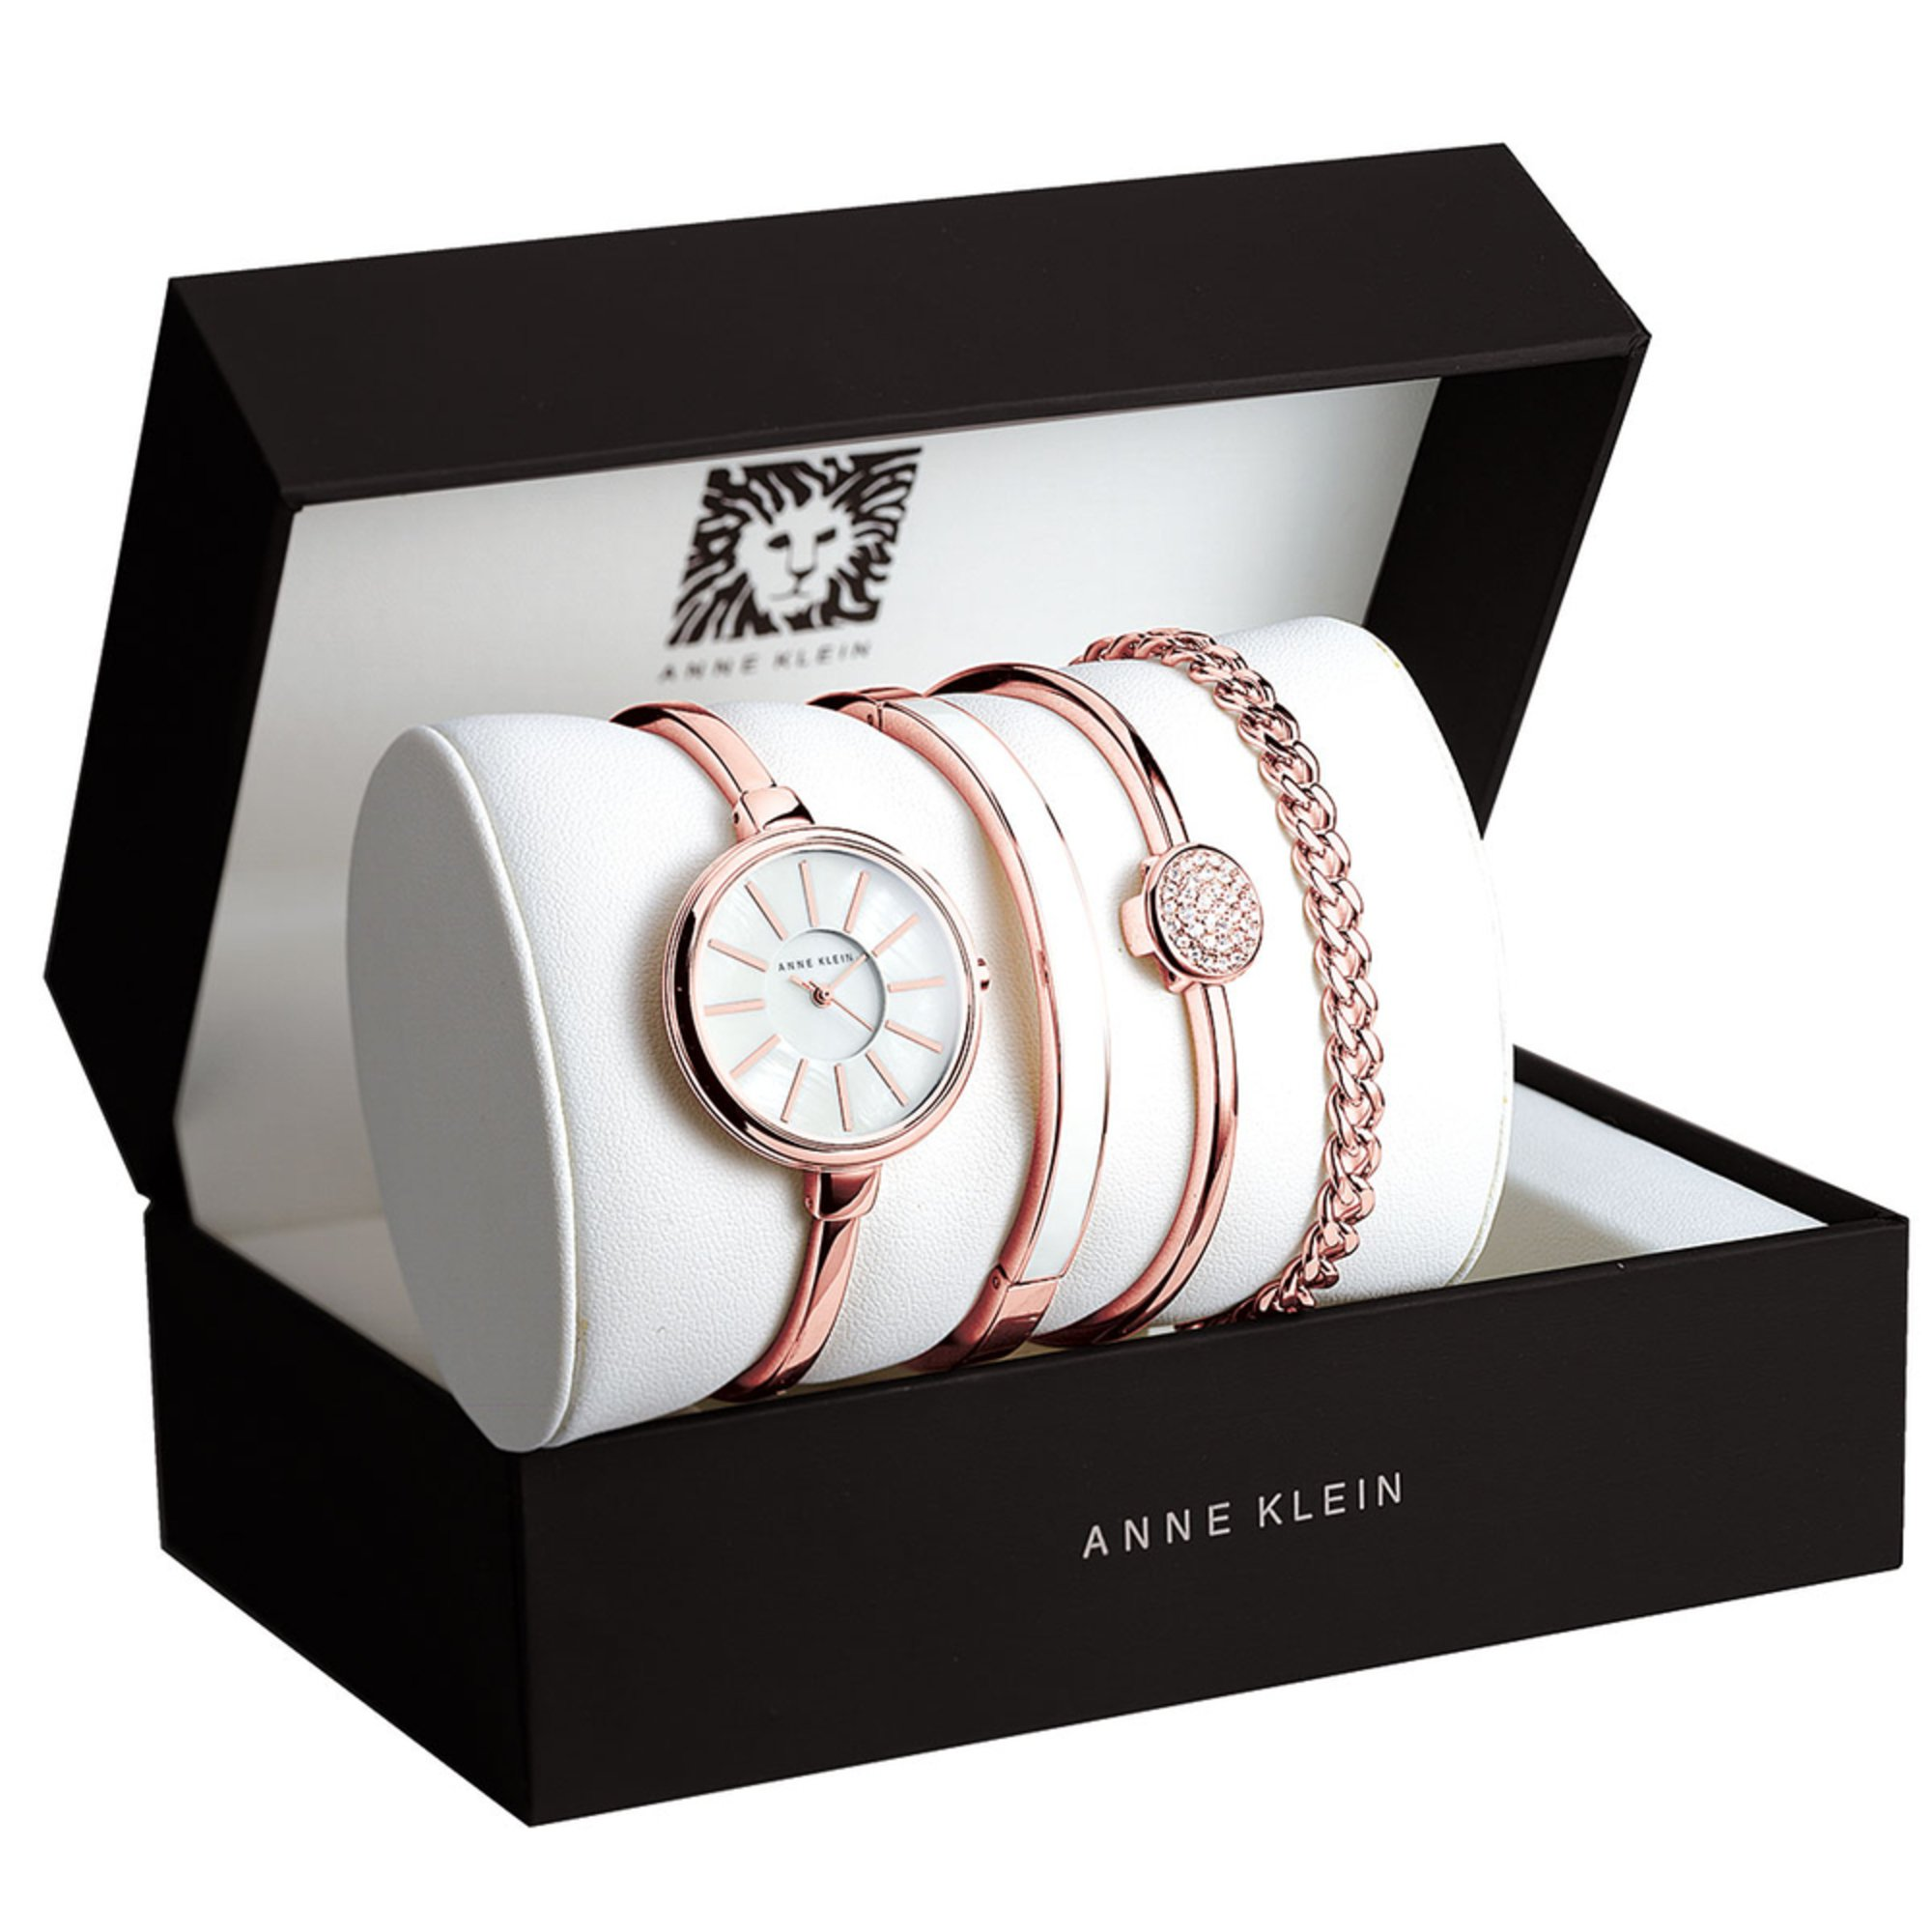 Anne klein women 39 s ivory and rose gold tone 4 piece bracelet watch box set 32mm women 39 s for Anne klein rose gold watch set